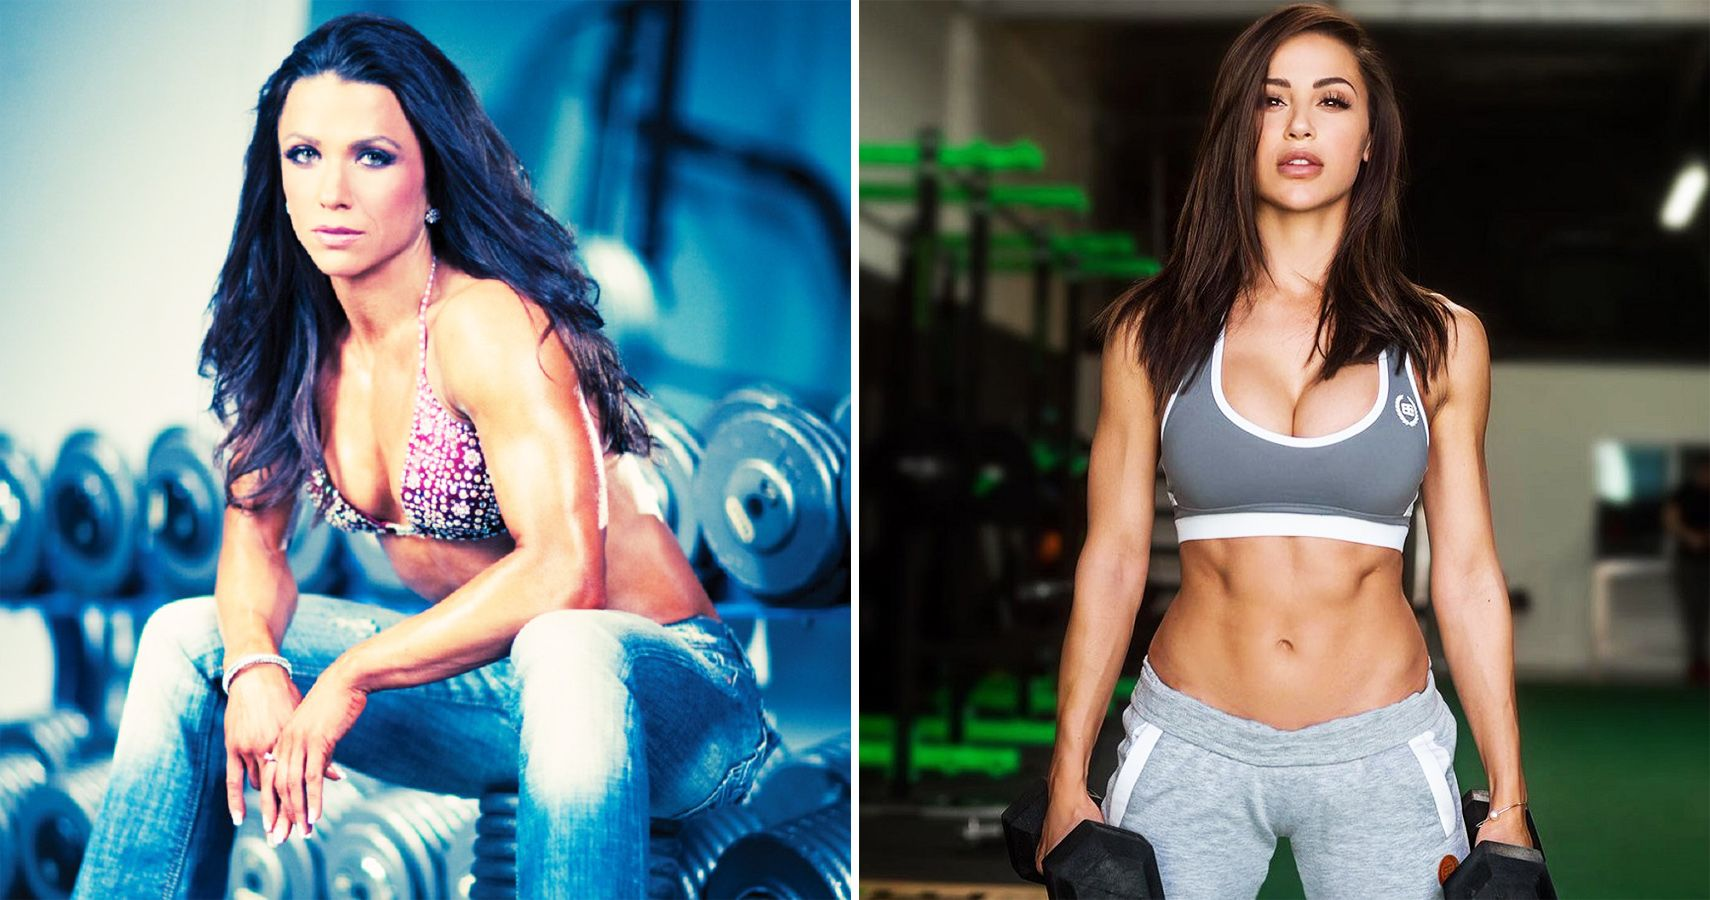 Top 15 Hottest Female Bodybuilders In The World Today